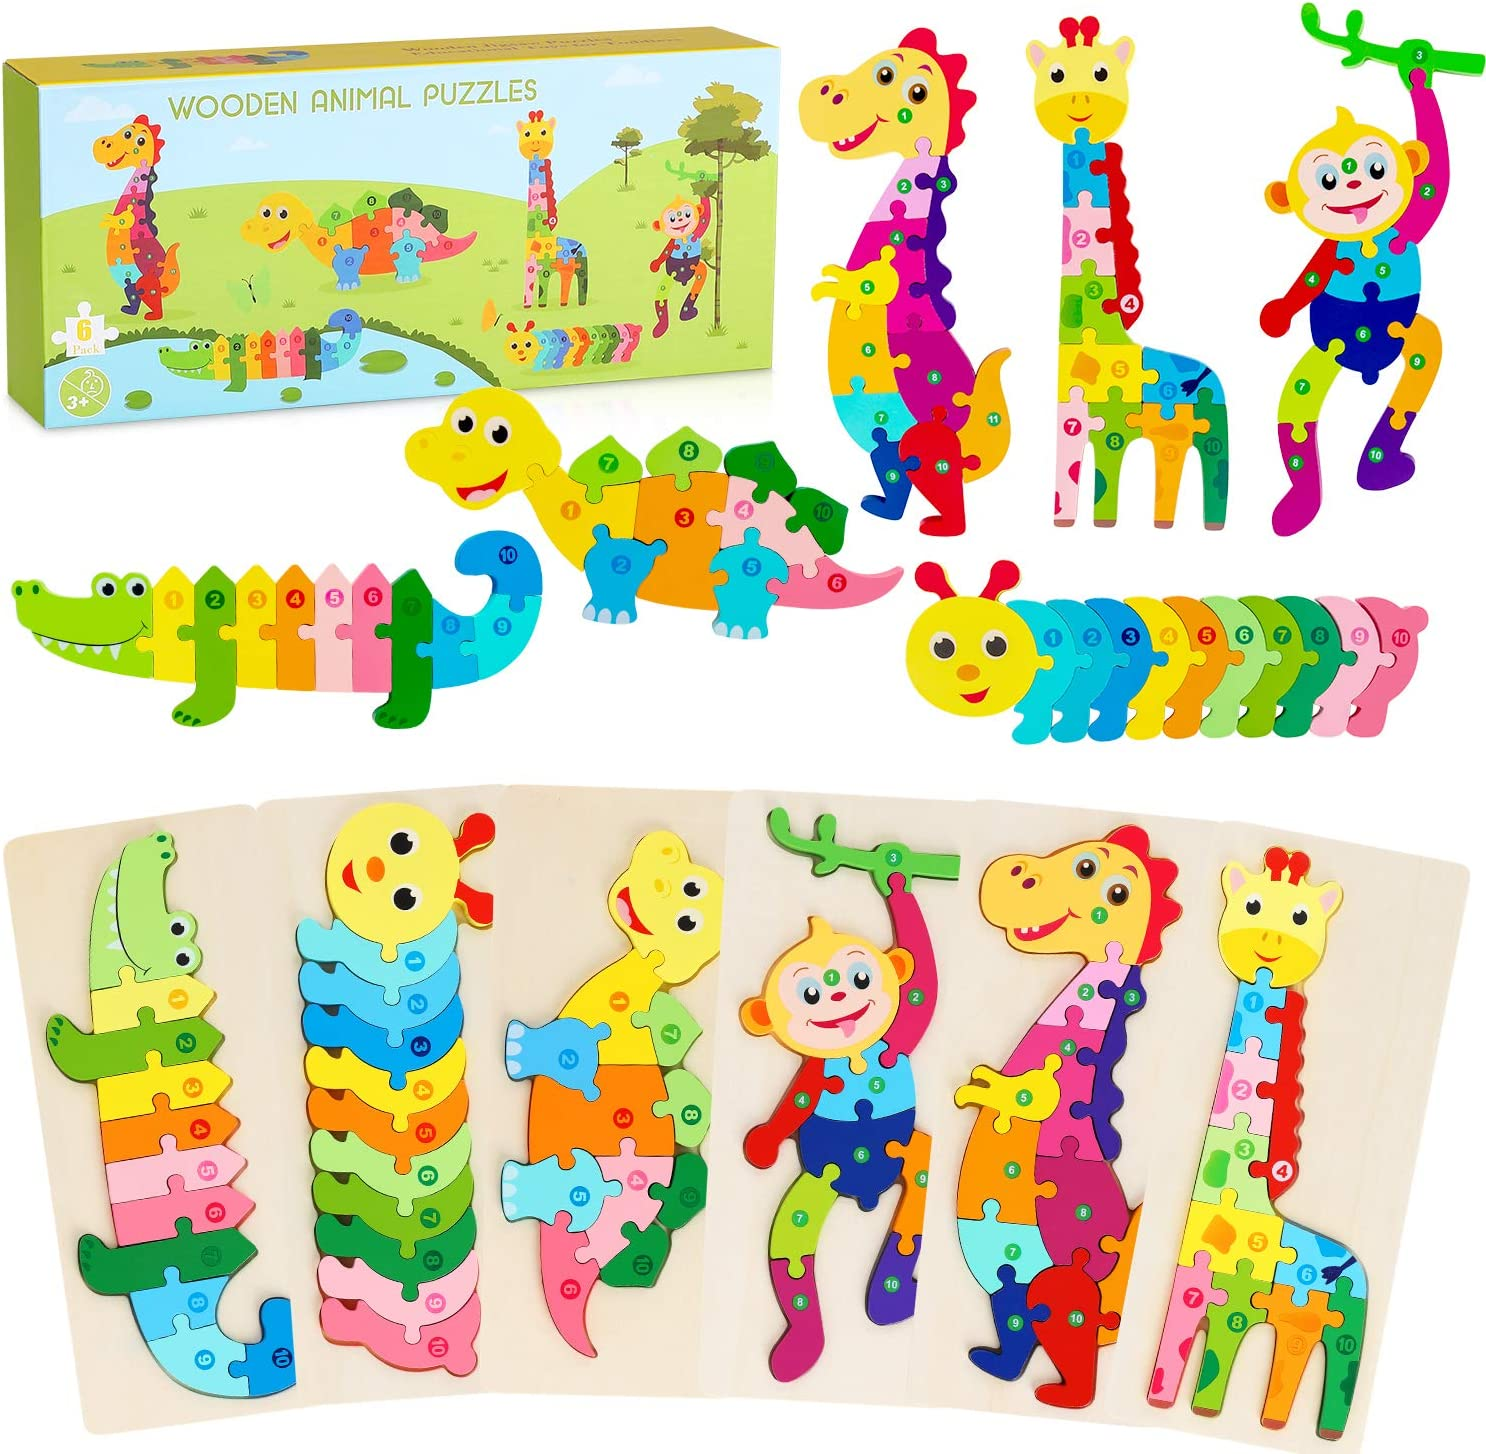 Wooden Toddler Puzzles 6 Pack Animal Shape Jigsaw Puzzles Interlocking /& Numbers Rainbow Kids Montessori Toys Sorting Stacking Game Early Learning Educational Gift Game for Ages 2 3 4 5 Boys Girls